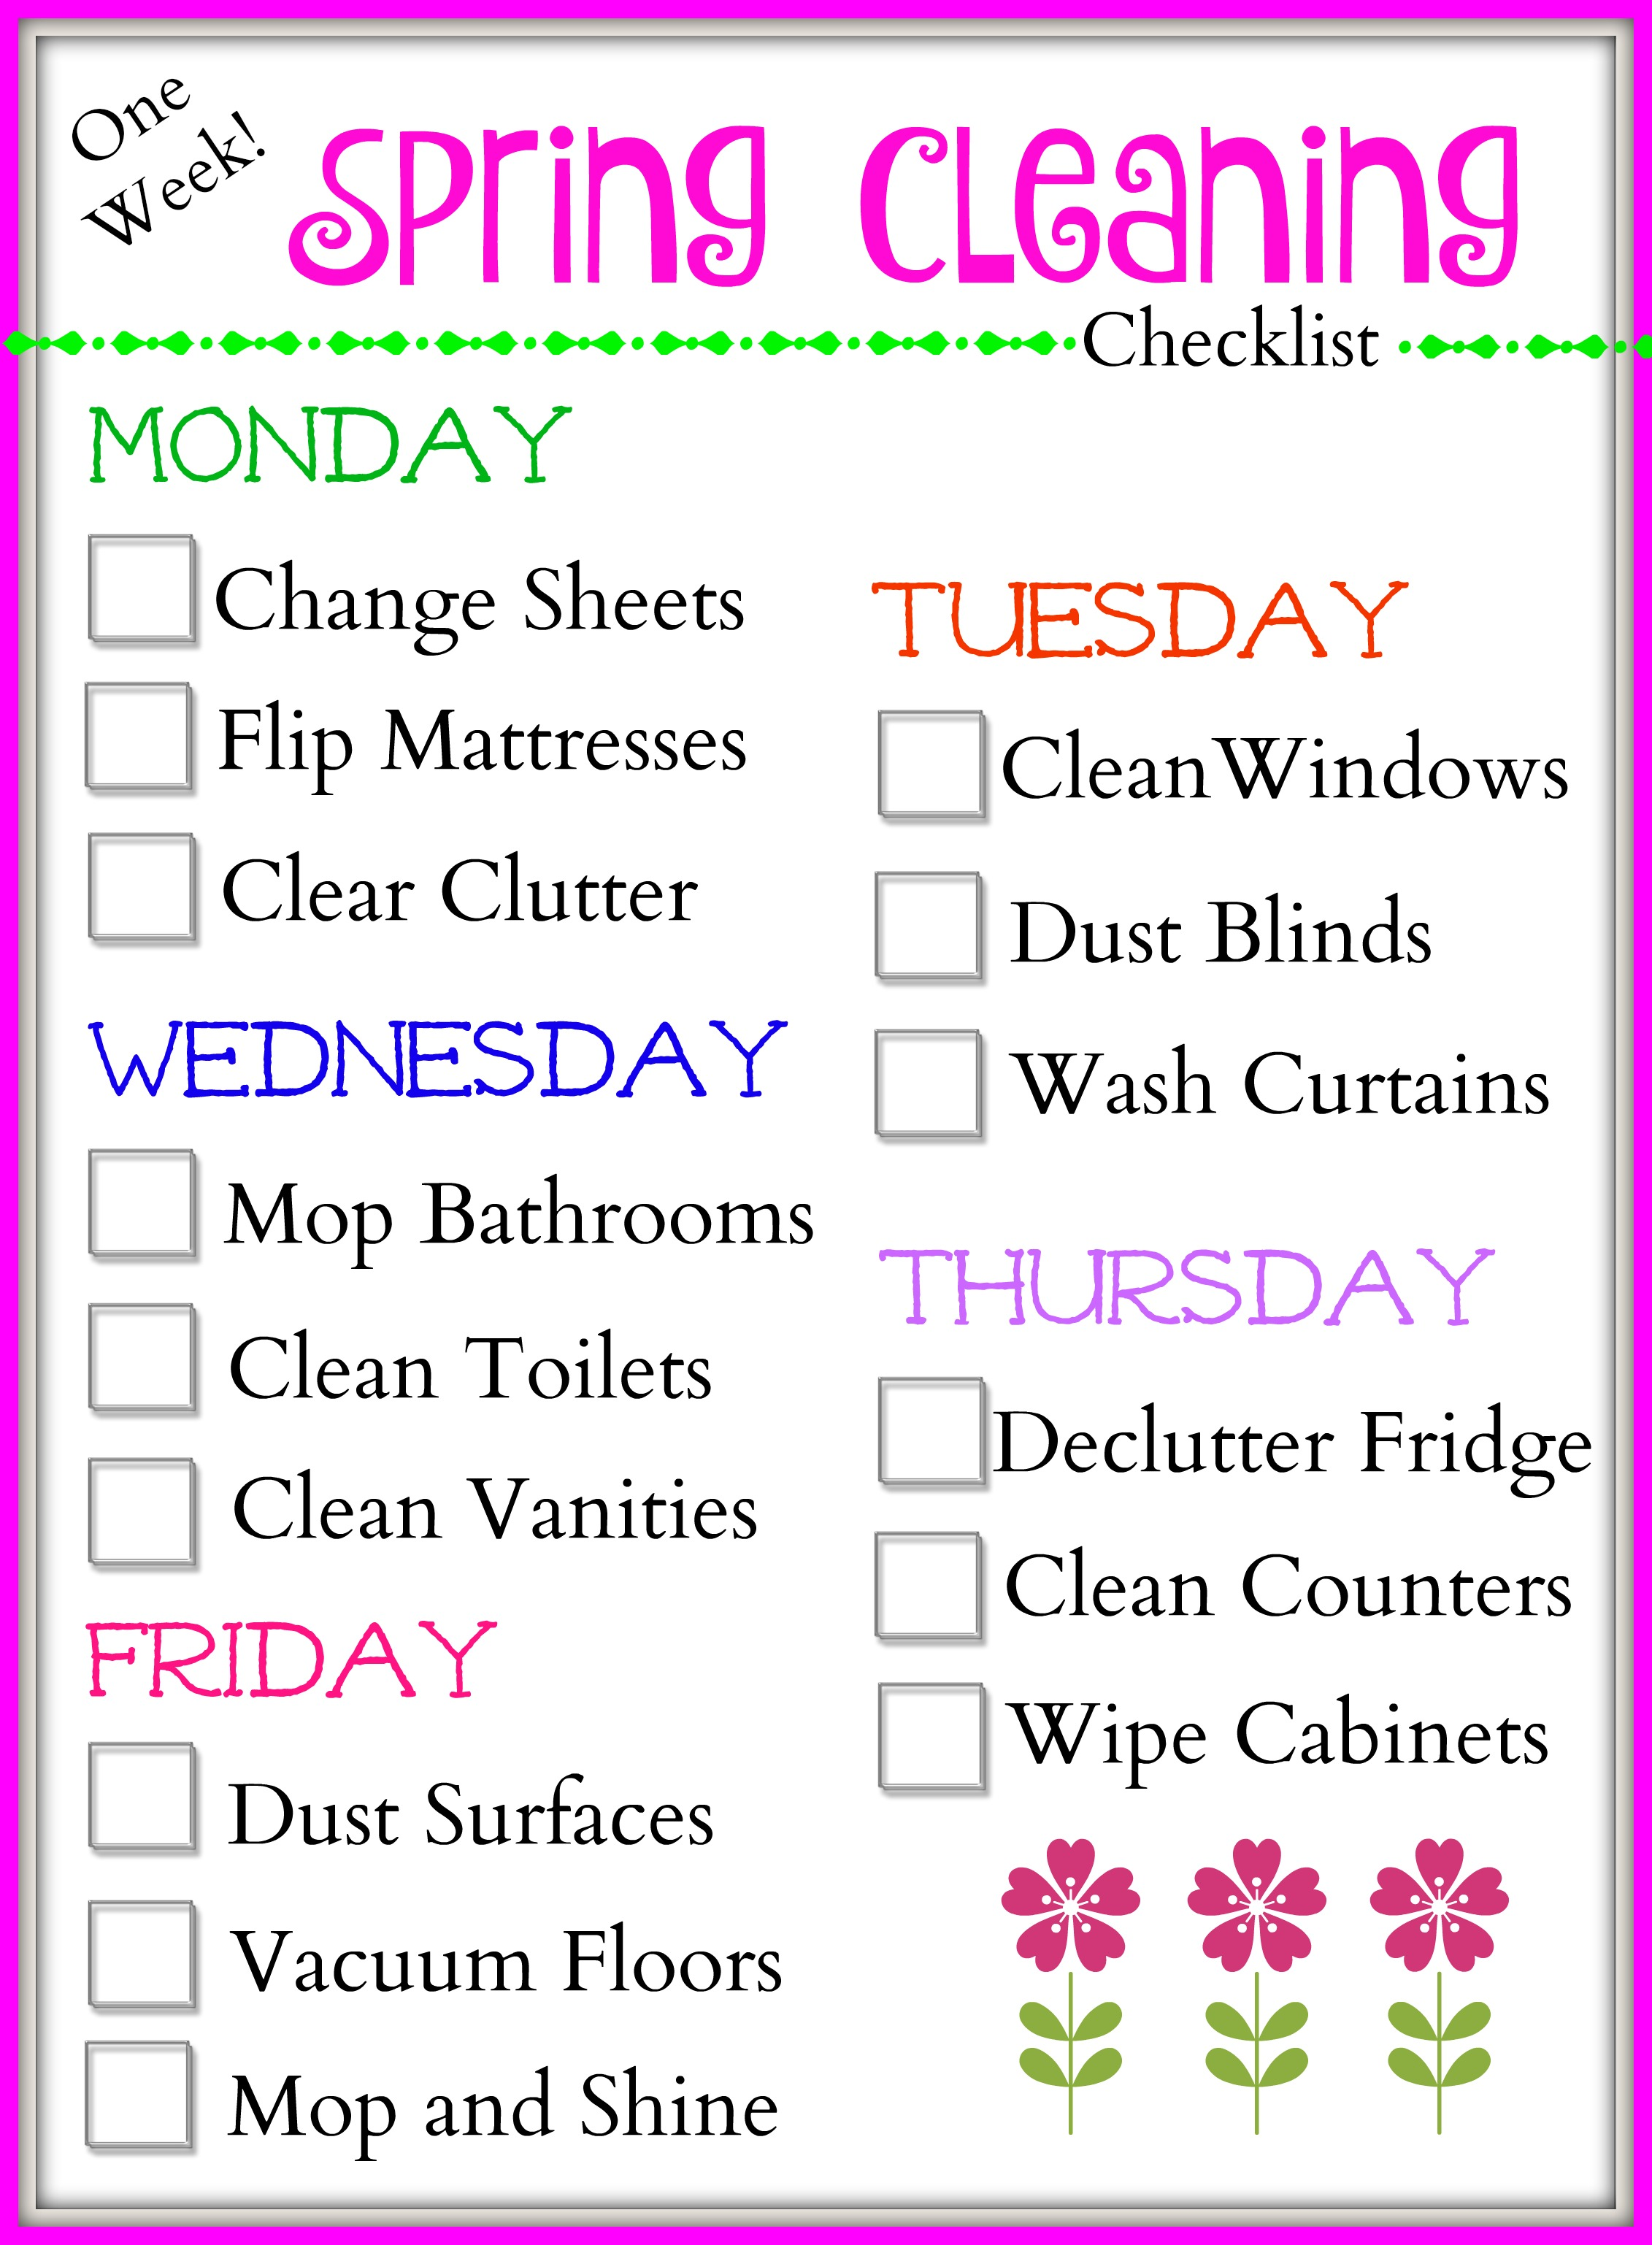 One Week Spring Cleaning Checklist Final